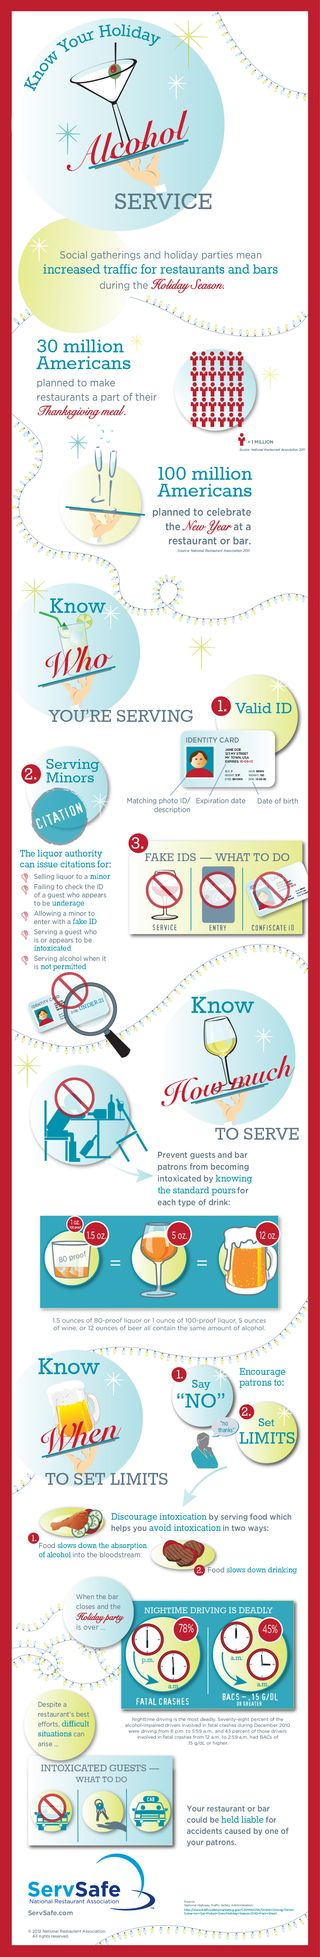 2012-Holiday-Alcohol-ServSafe-Infographic_web